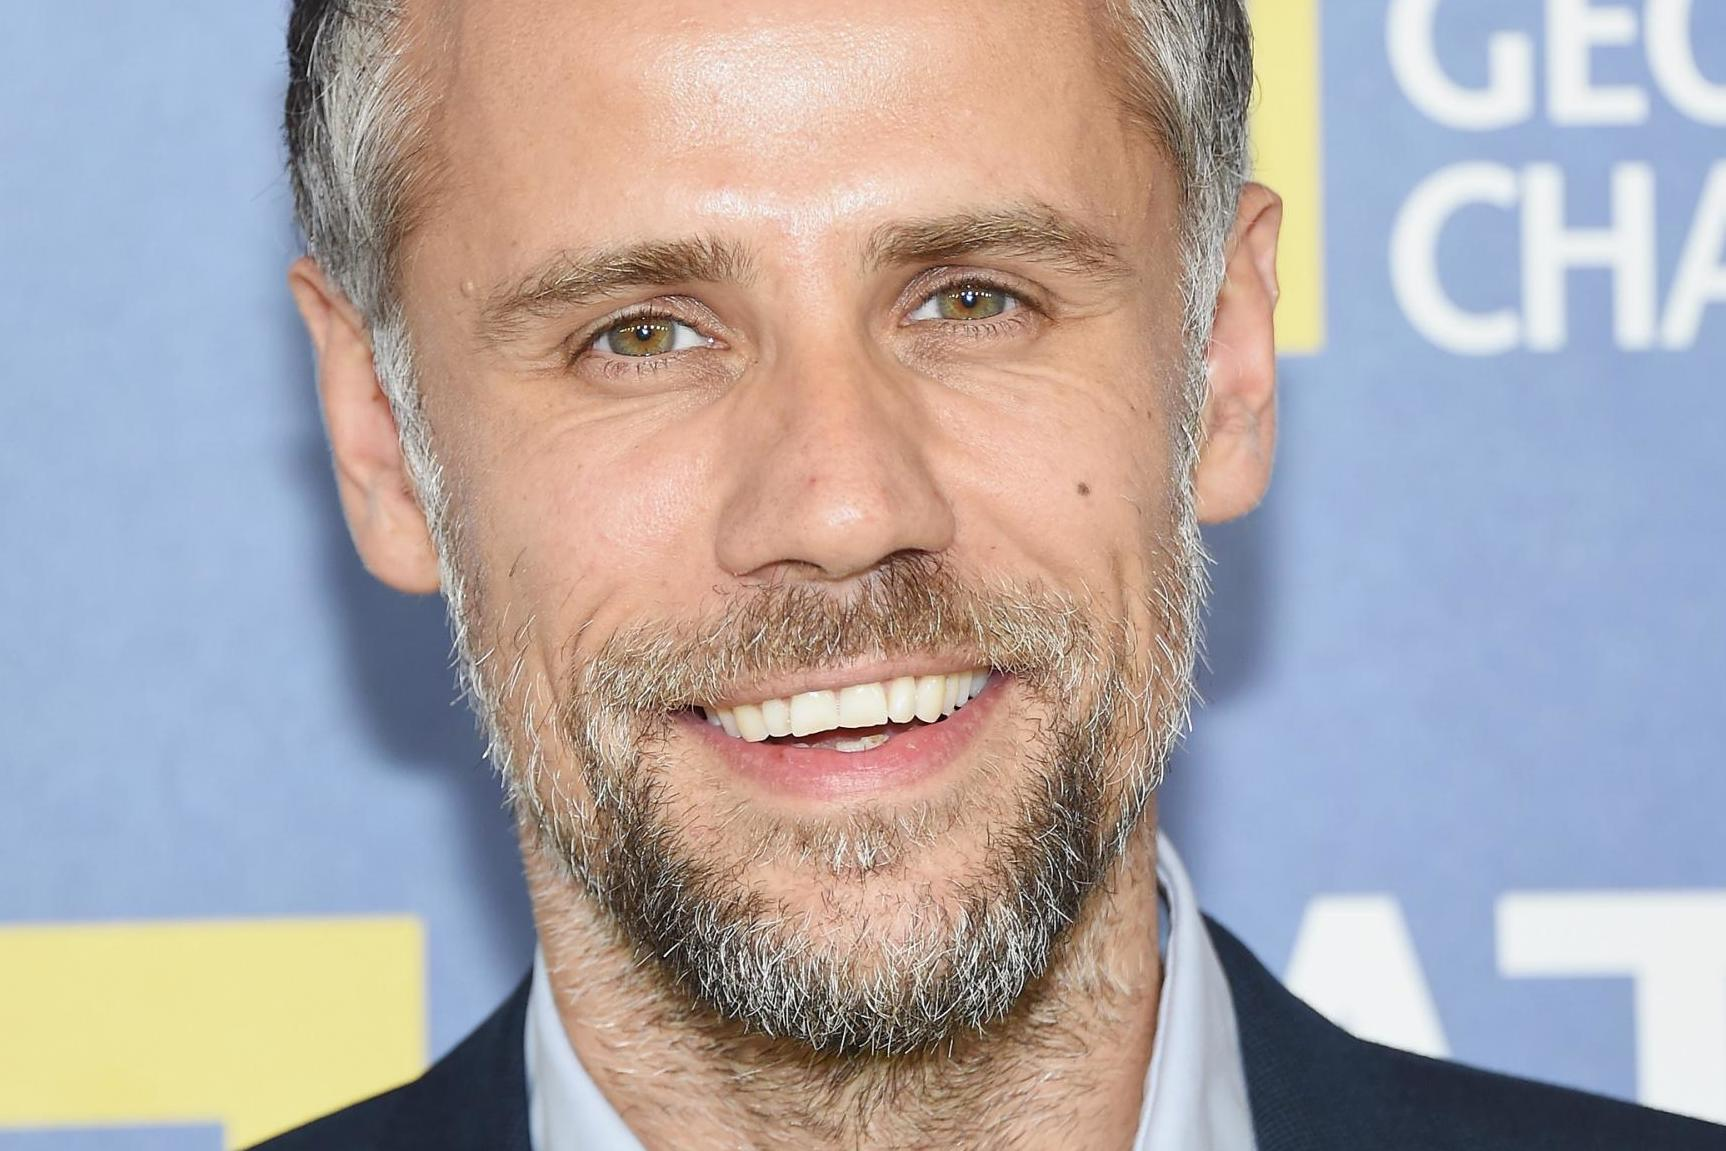 Richard Bacon says he has 'come close to losing everything' due to alcohol addiction